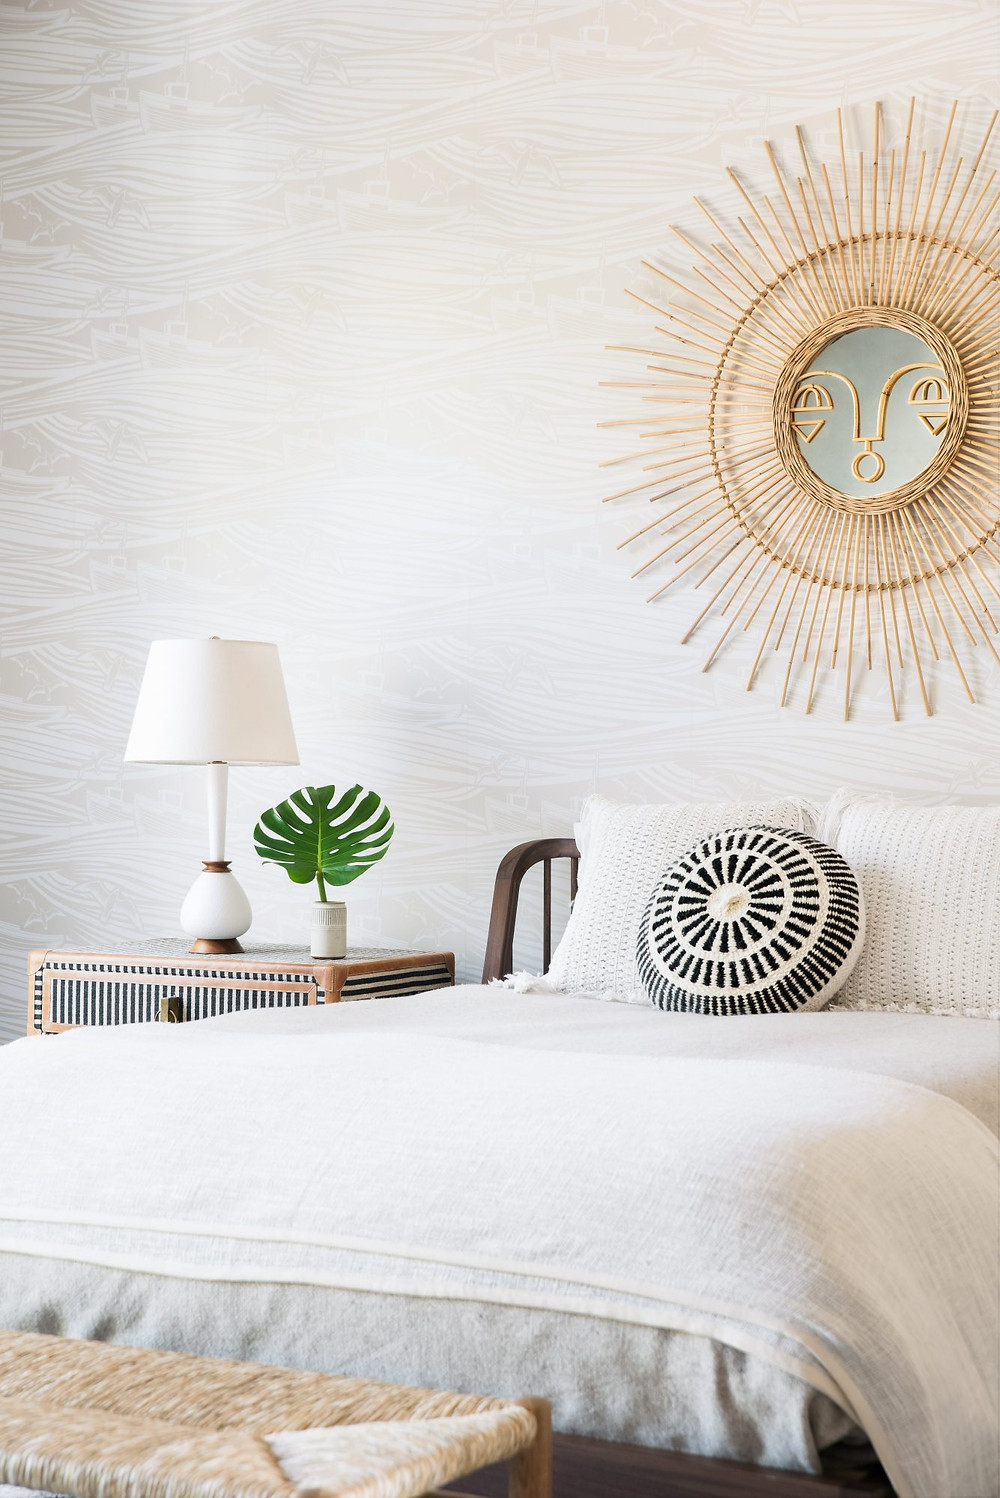 Charming bright and airy Modern Farmhouse Bedroom. Sun Mirror above Bed. Wave and Boat Wallpaper.